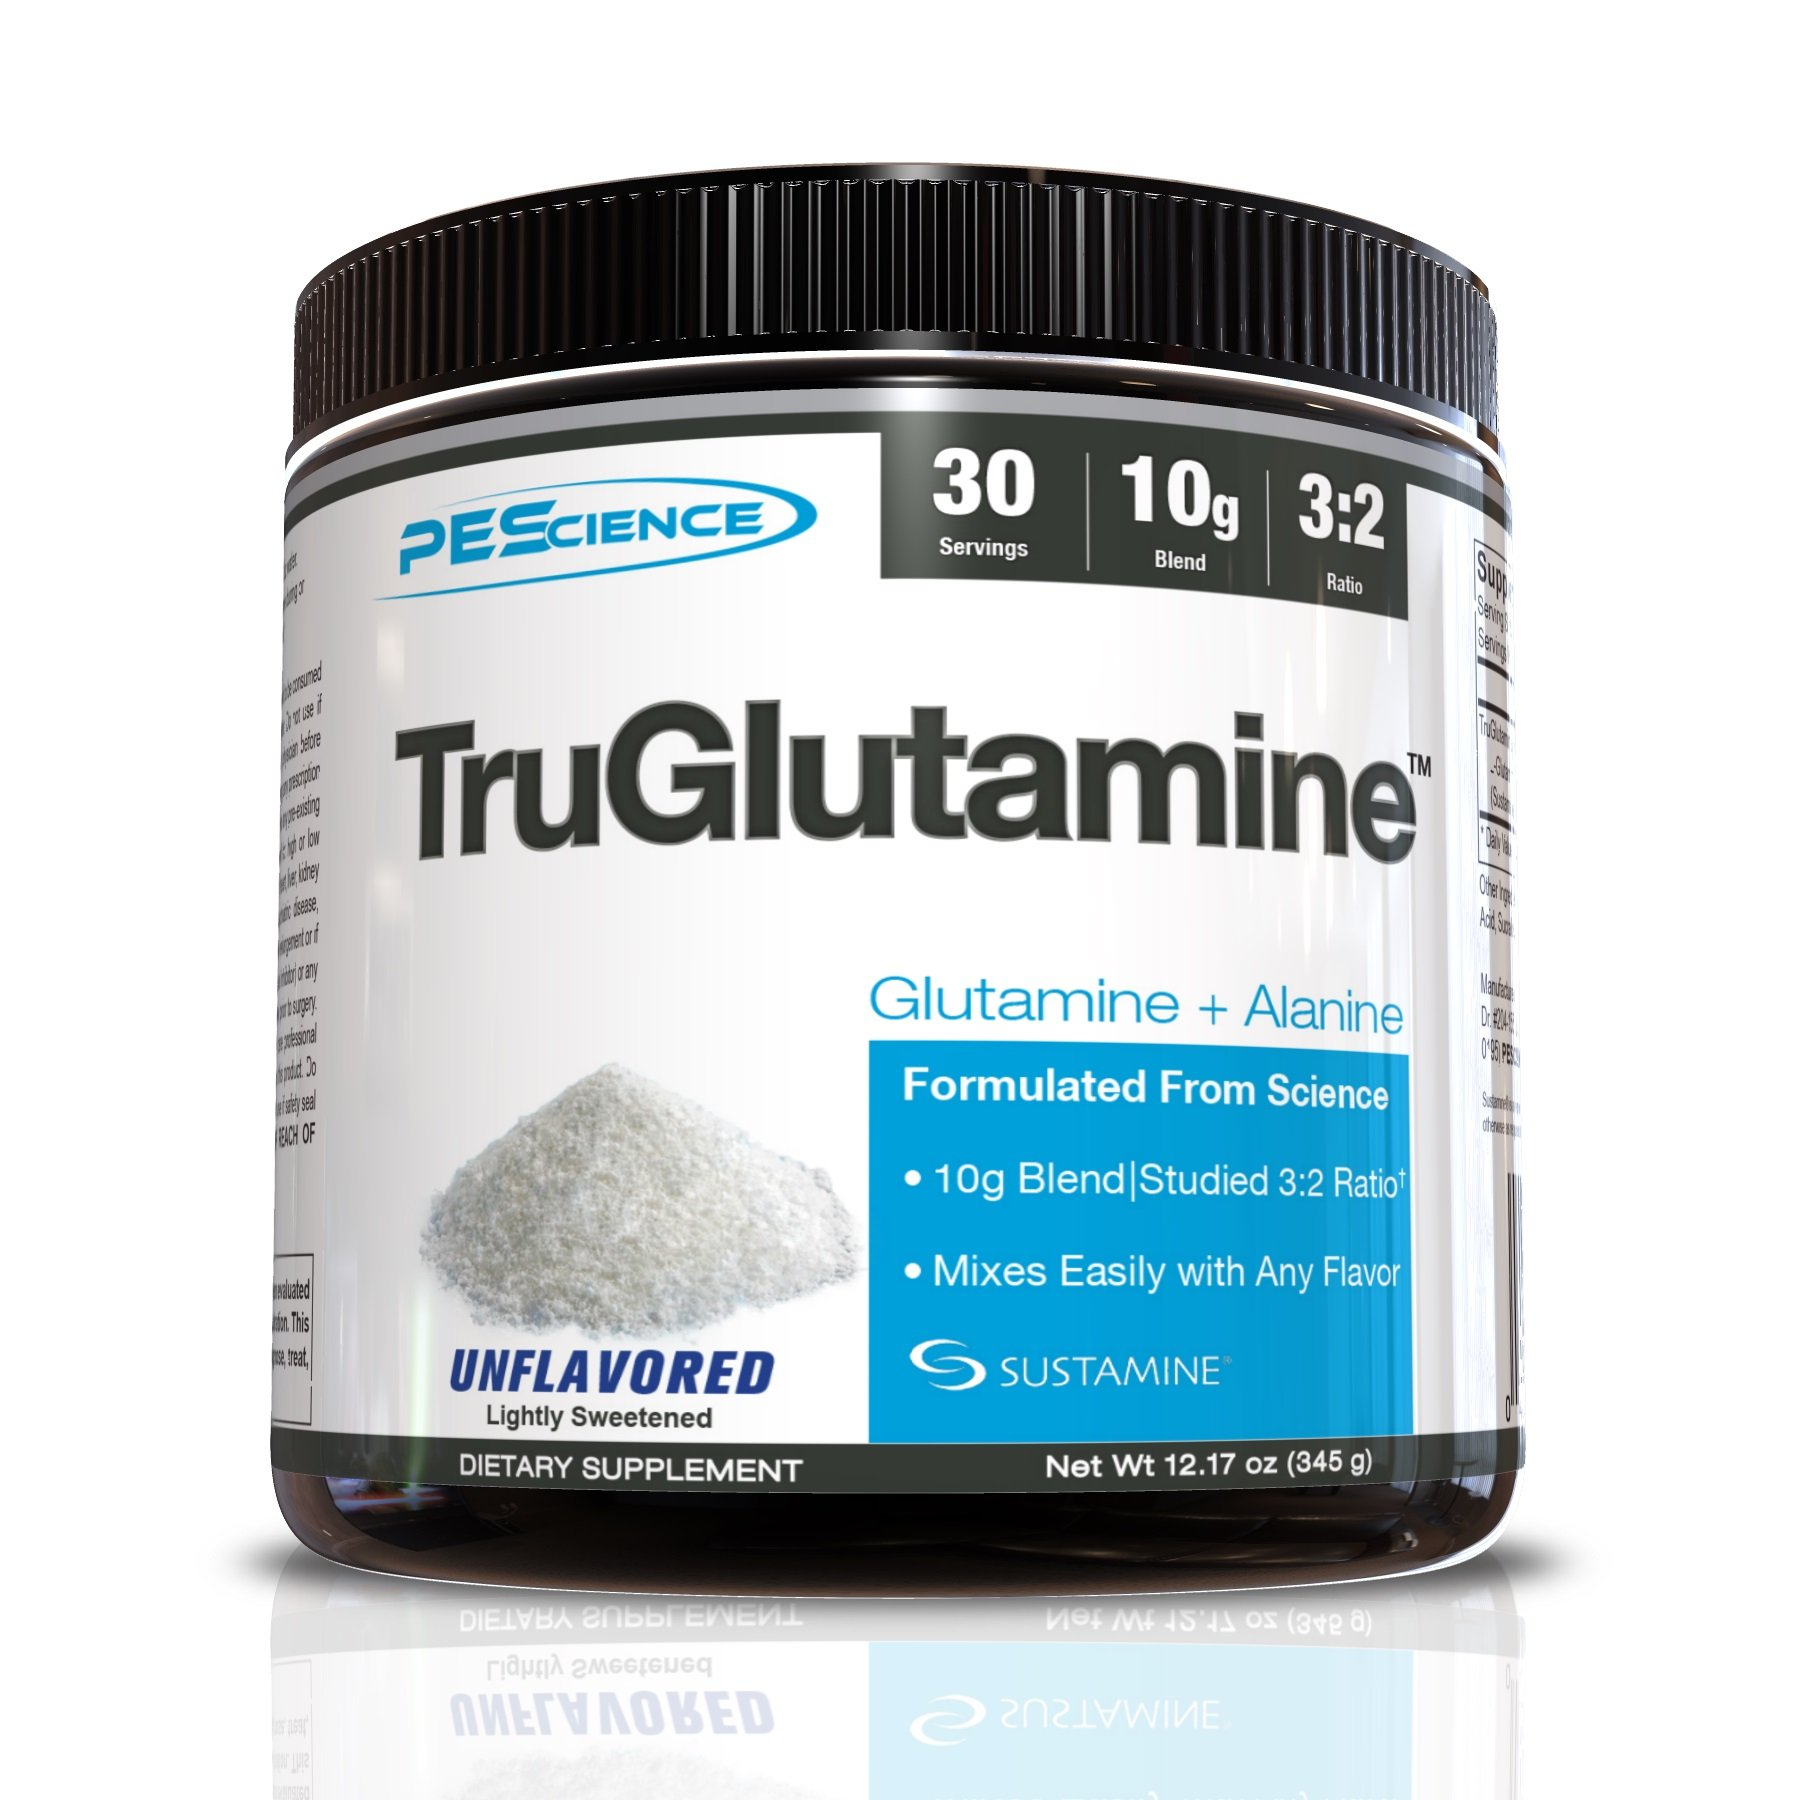 Pescience Truglutamine Unflavored, Black, 12.17 Ounce